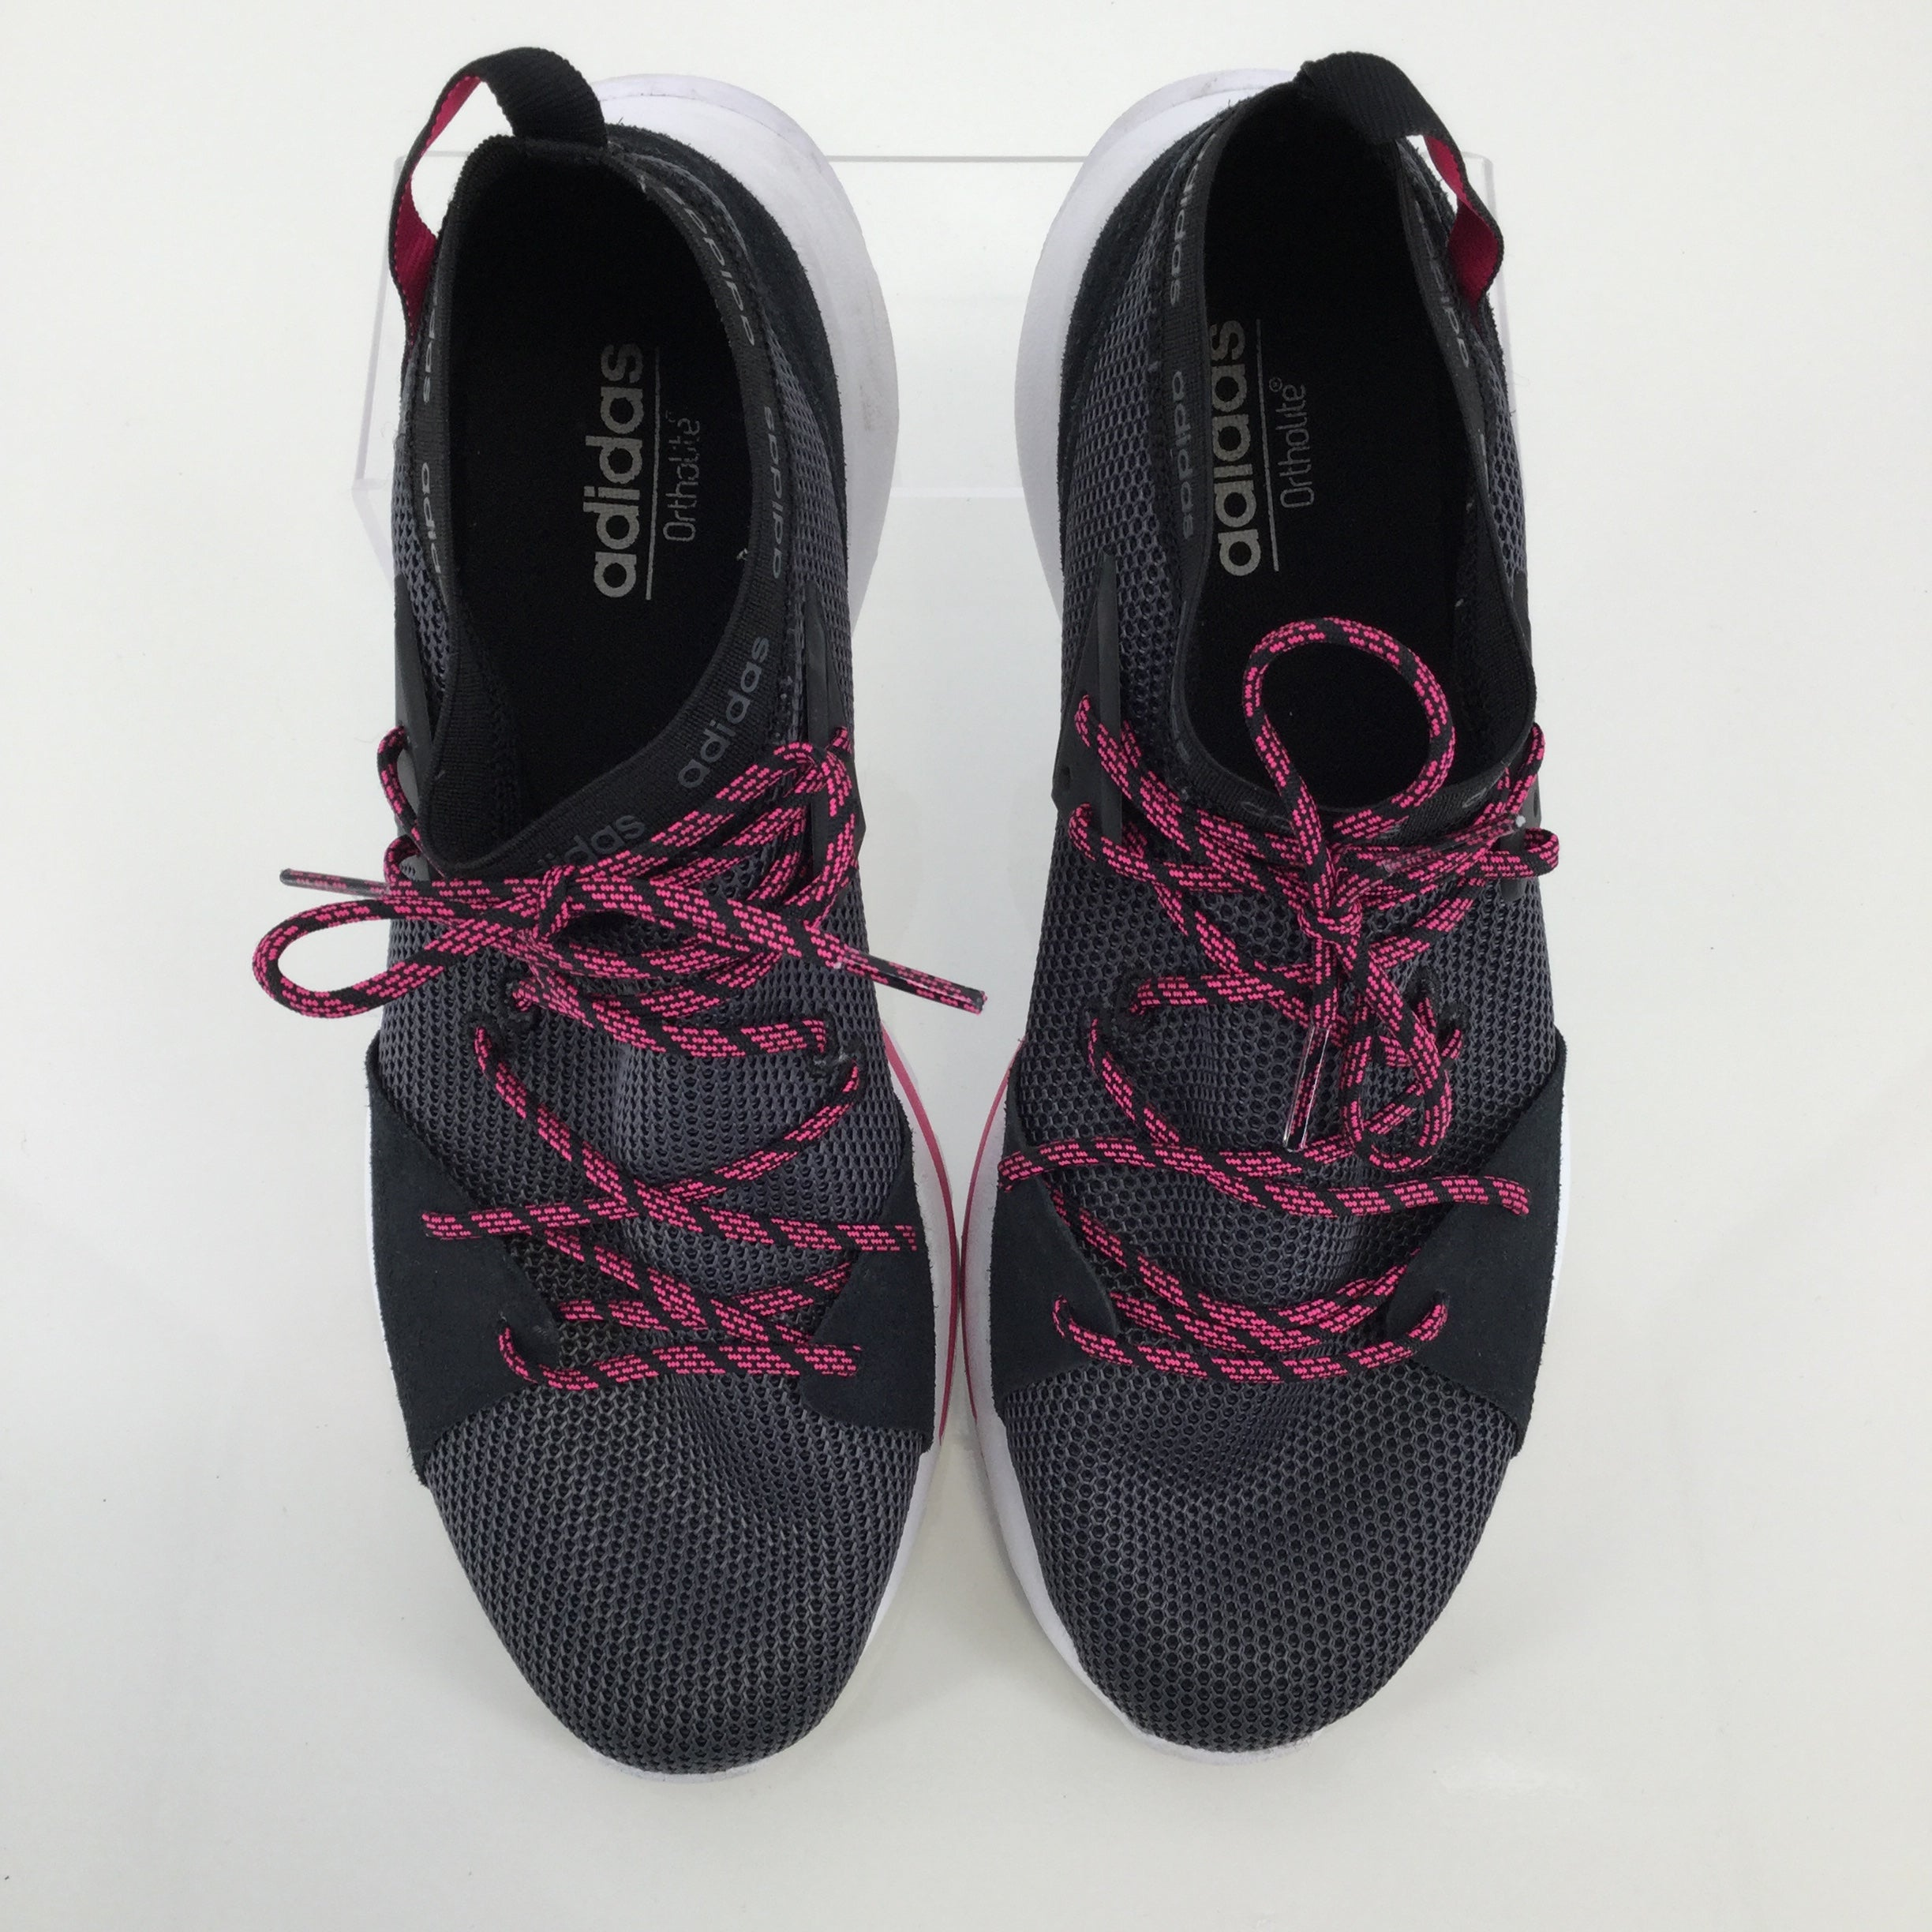 SHOES, - ADIDAS ATHLETIC ORTHOLITE SLIP ON SHOES. WOMEN'S SIZE 9. BLACK WITH PINK/BLACK LACES. STRETCHY MESH UPPER.